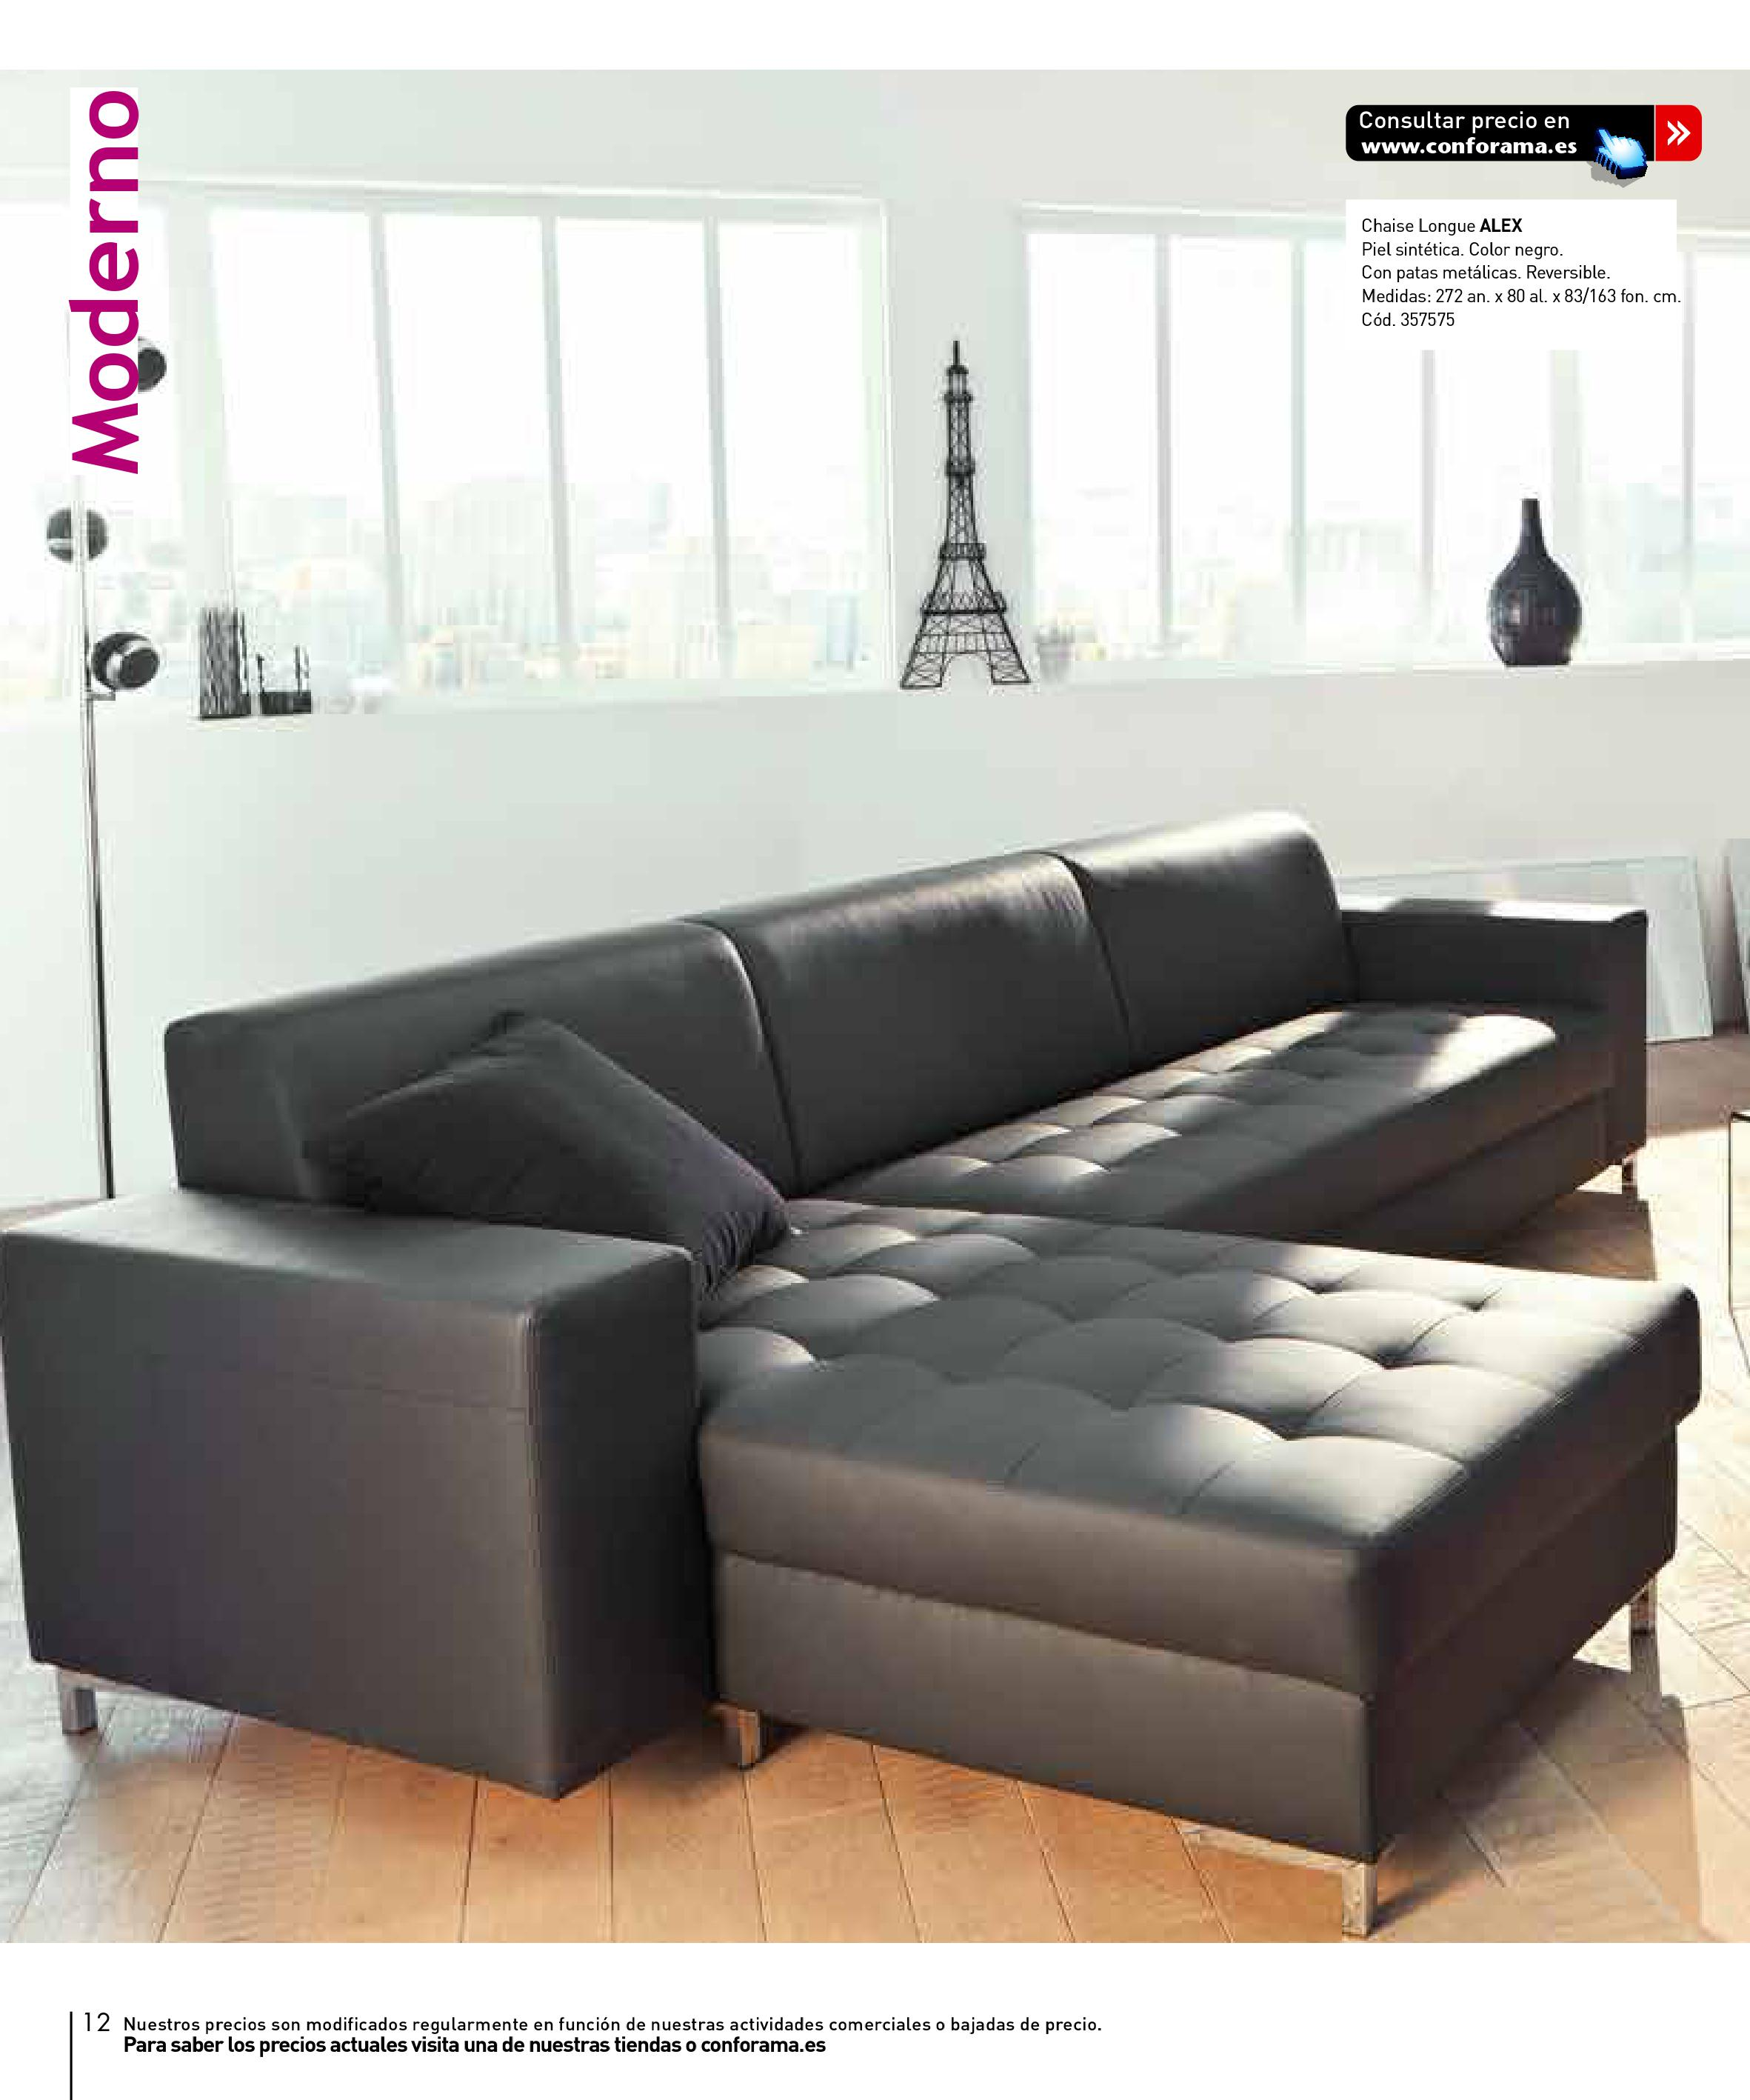 Sofas conforama 201512 for Sofas conforama catalogo